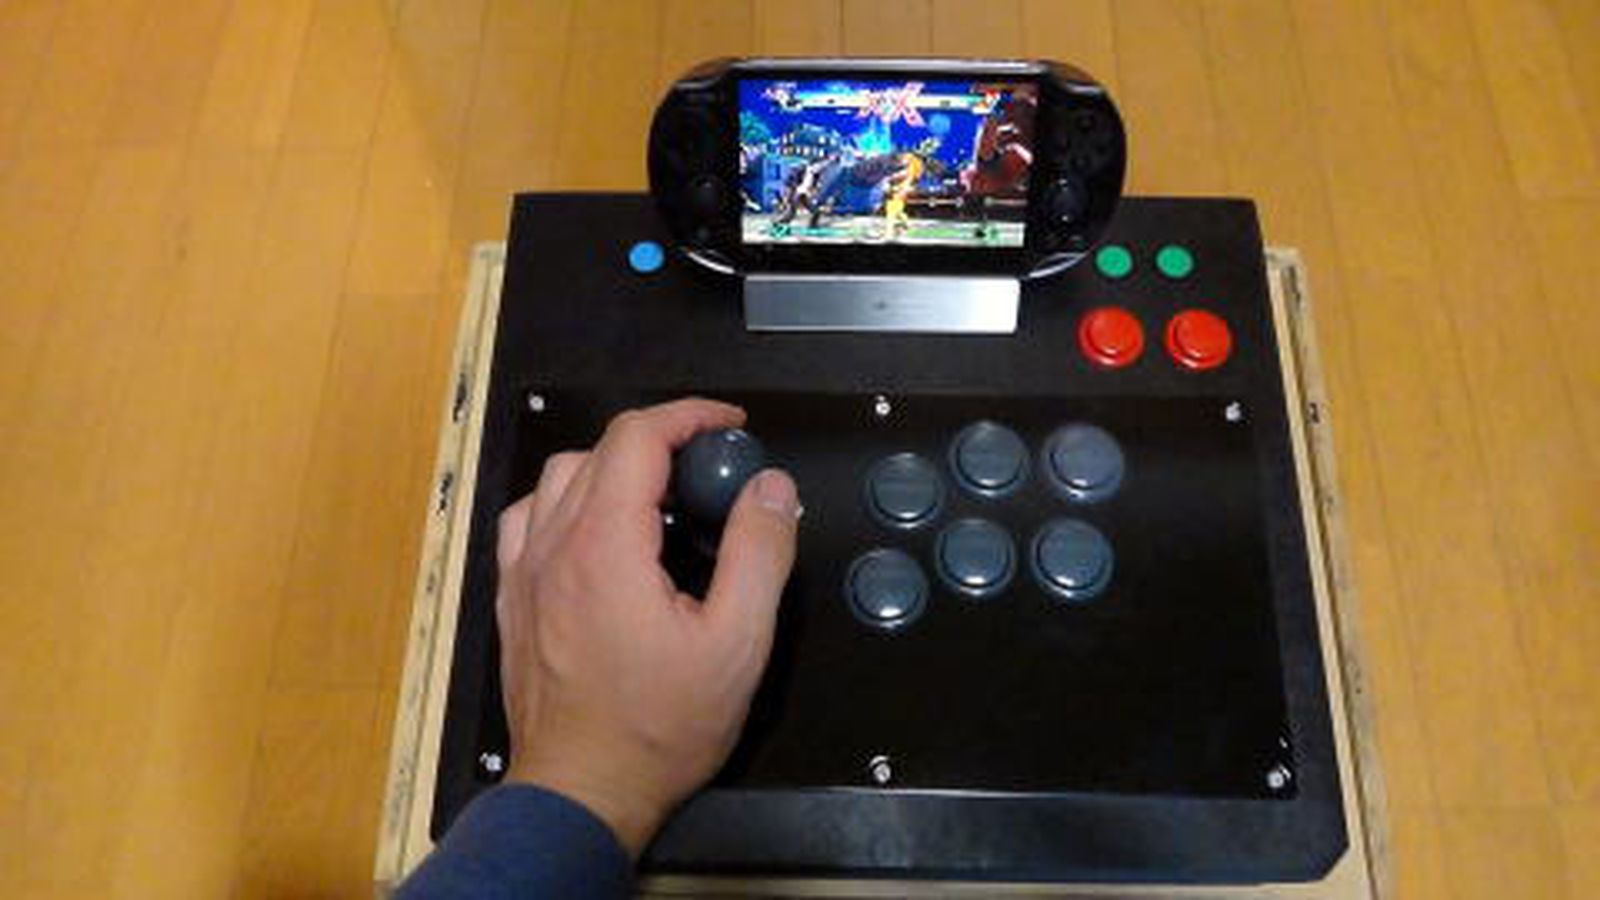 Arcade stick hack turns PS Vita into a mini Street Fighter cabinet  The Verge